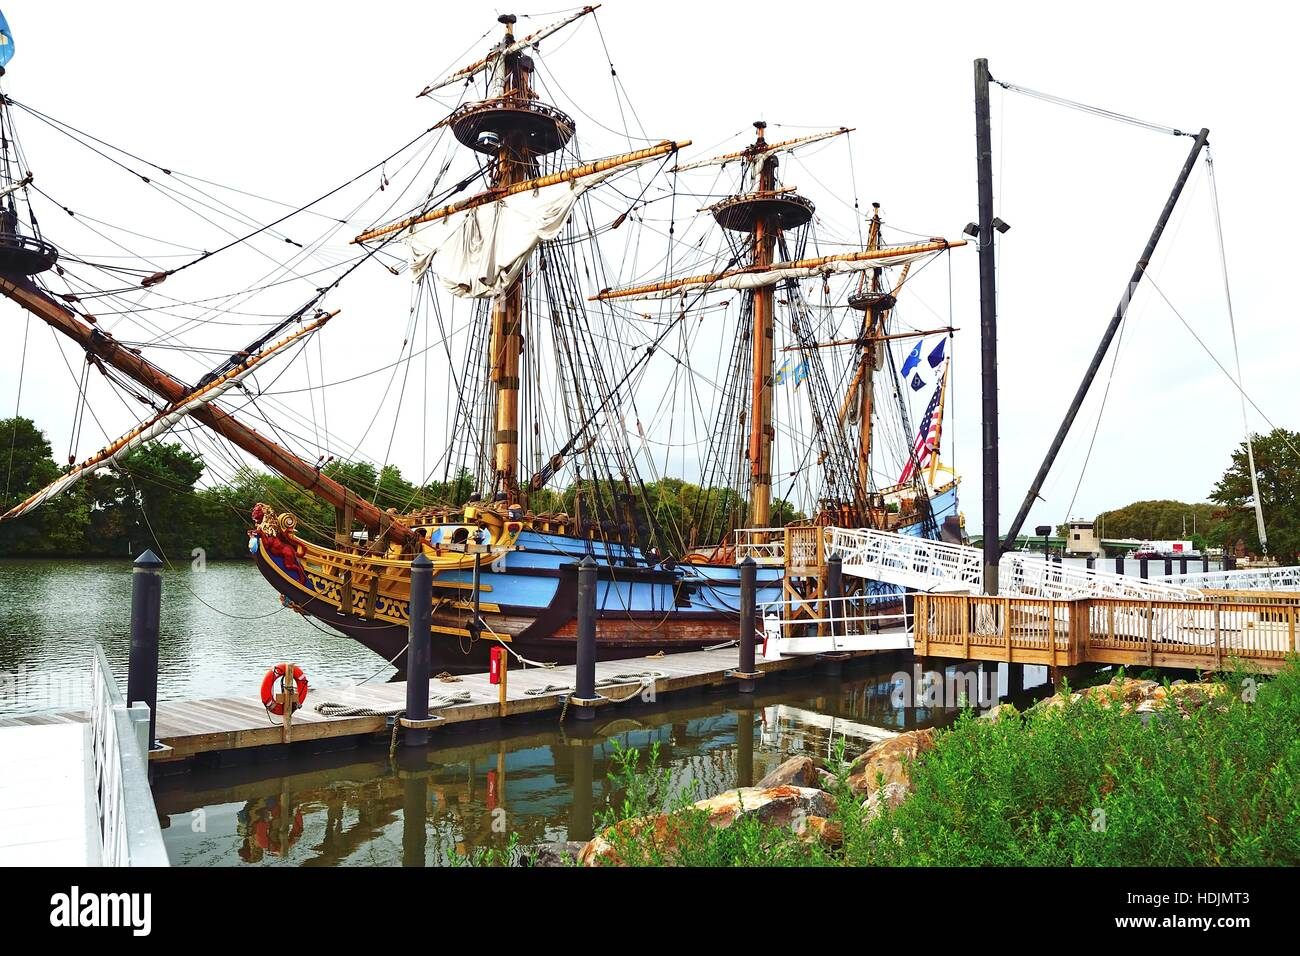 A replica of the 1638 sailing ship Kalmar Nyckel is ported on the Christina River in Wilmington, Delaware USA. - Stock Image